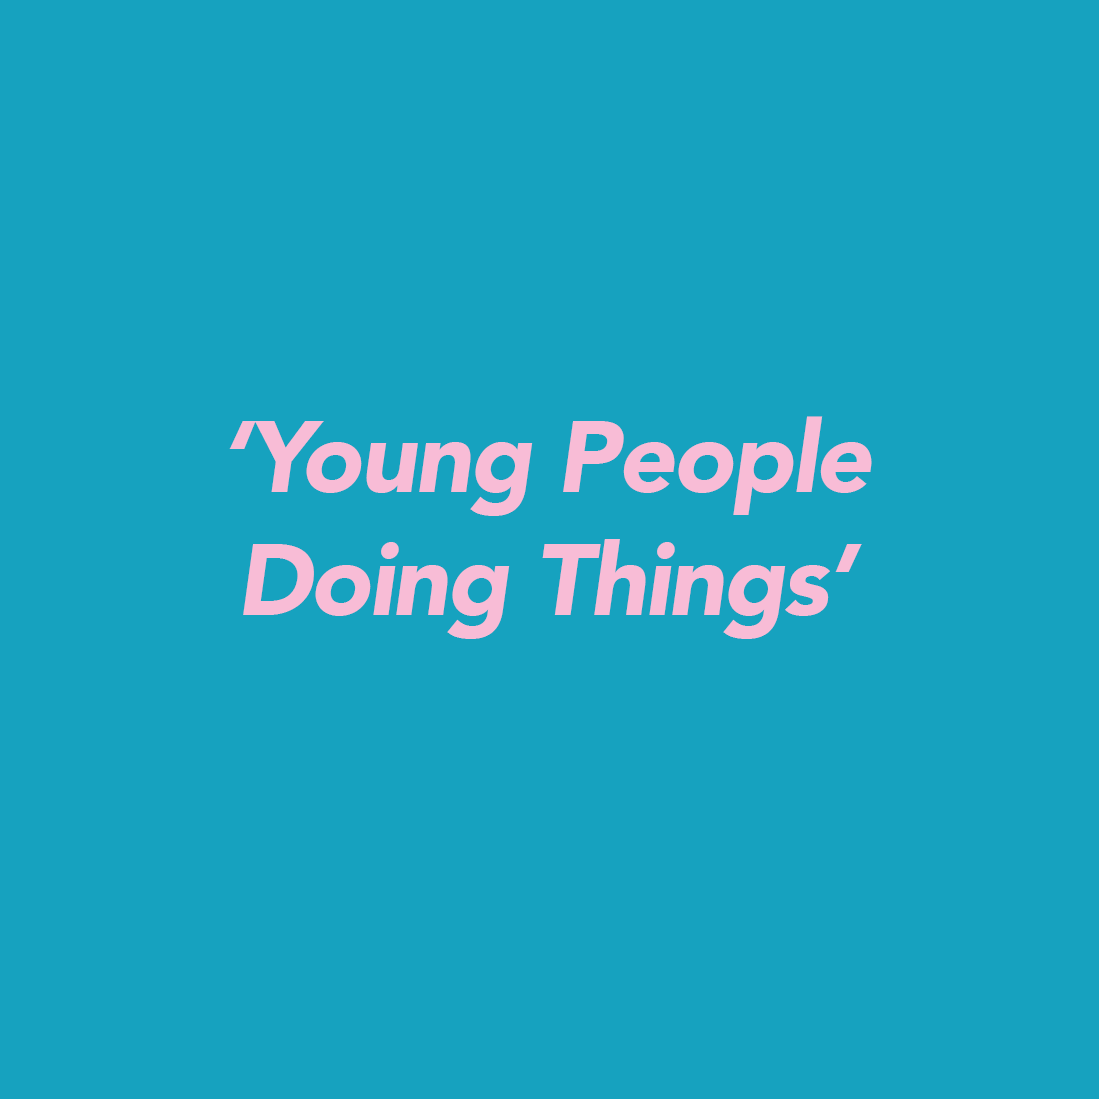 Young People Doing Things: 009 - In this podcast episode we get to know The Deck and its Founder. We explore the realities of starting a business, the highs and lows, as well as the challenges along the way.